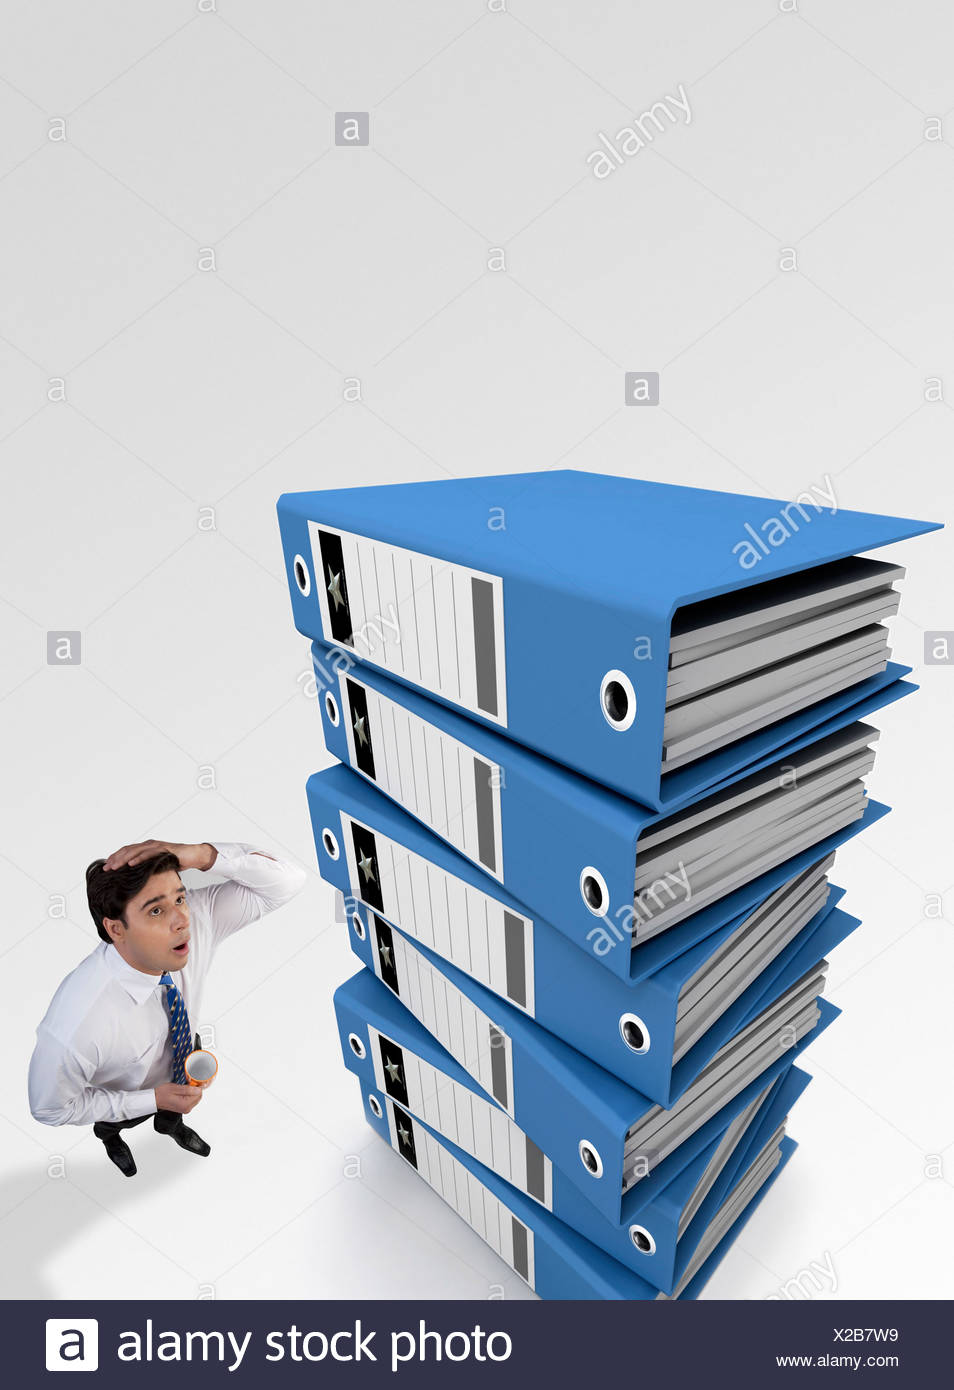 Businessman tensed after looking at a stack of files - Stock Image